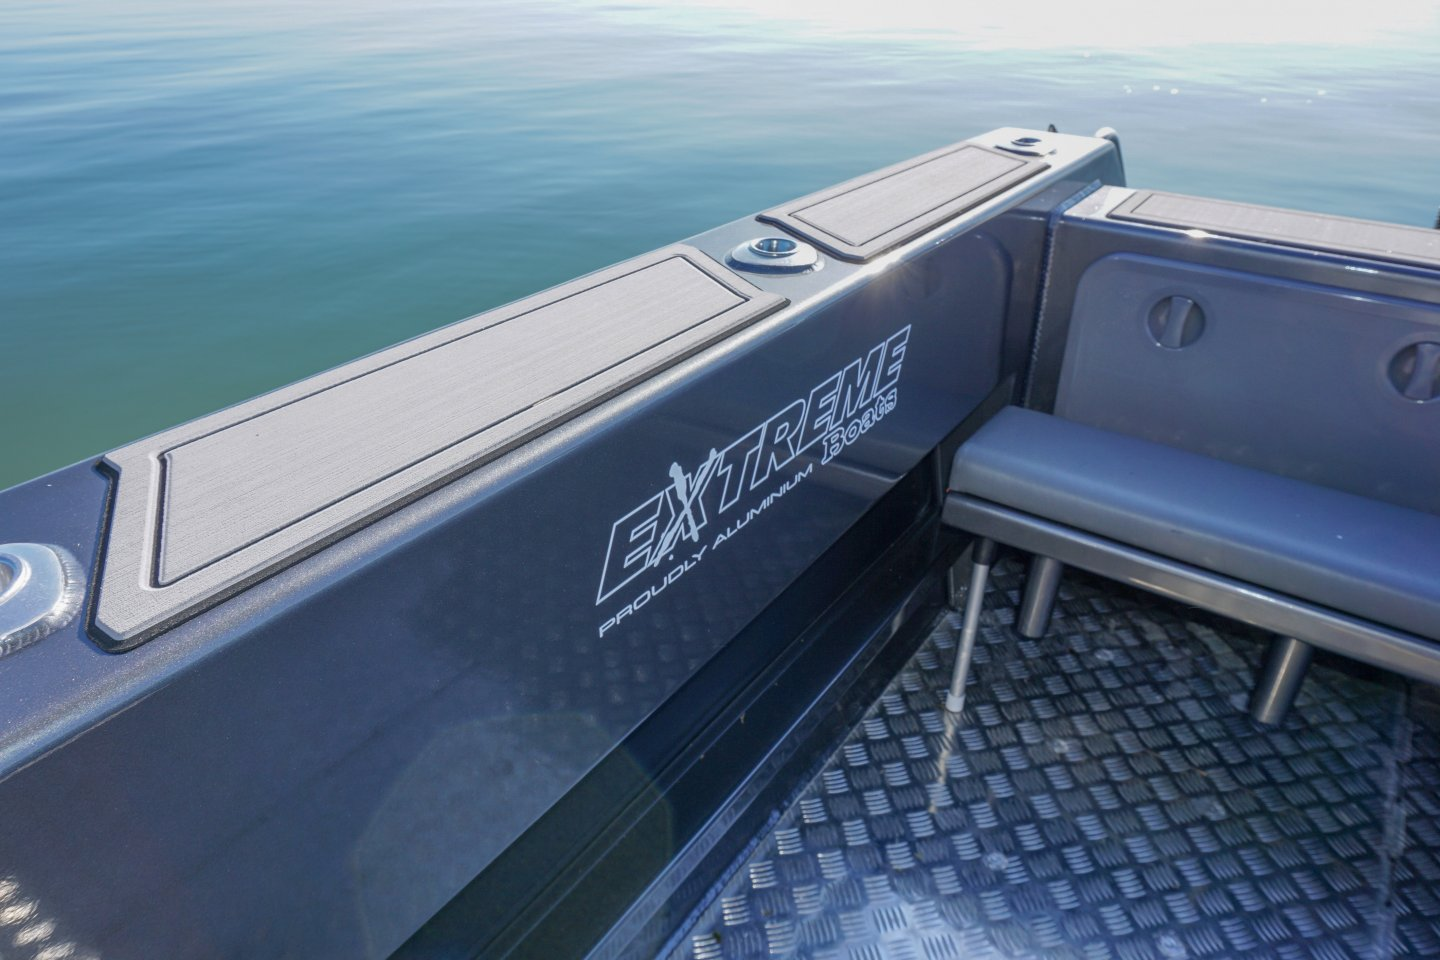 Extreme rear deck